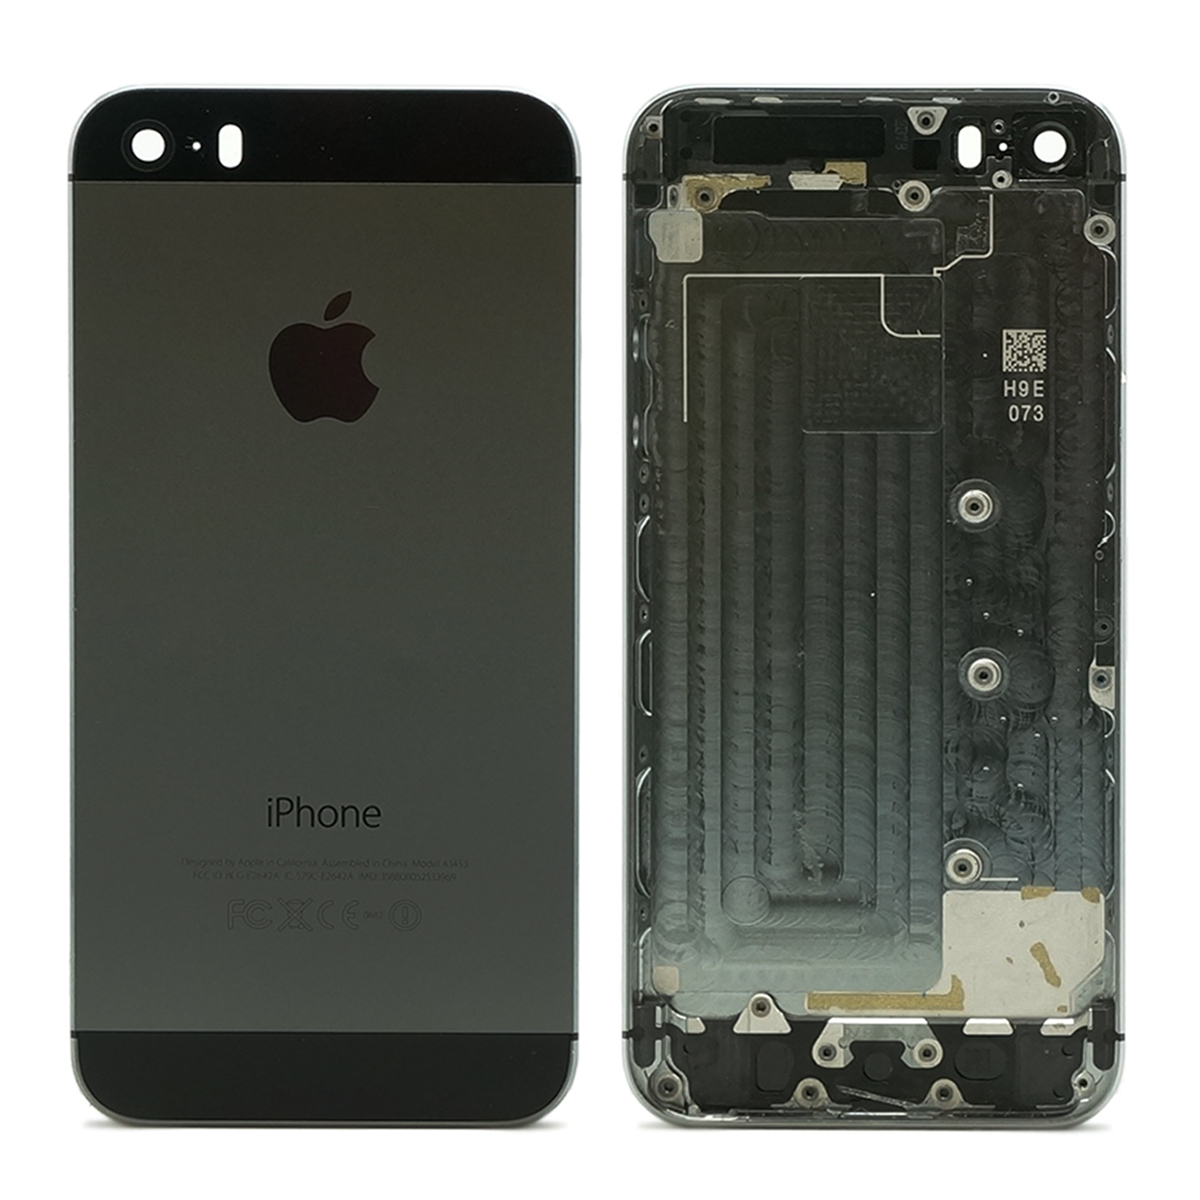 refurbished original apple iphone 5s black silver gold back housing mid frame ebay. Black Bedroom Furniture Sets. Home Design Ideas